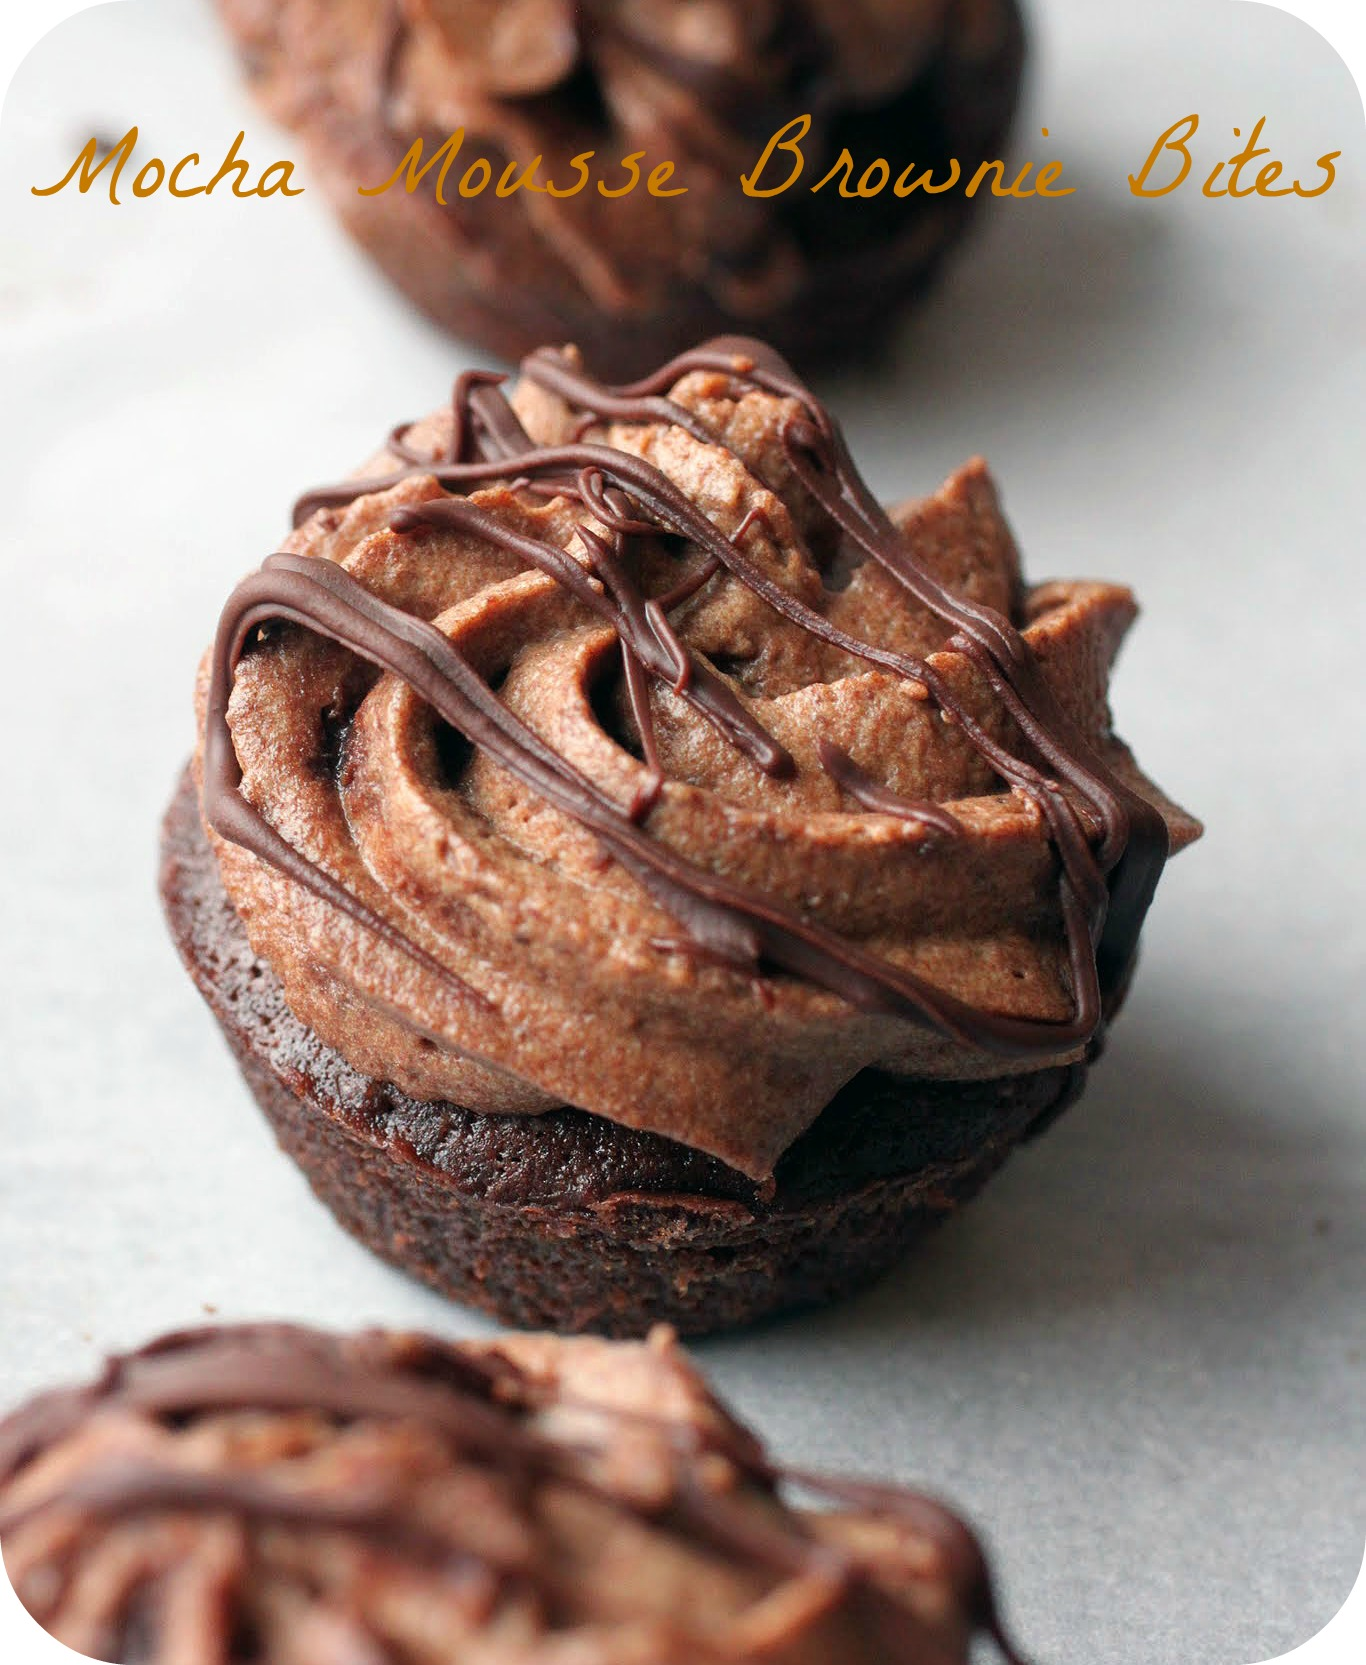 Mocha Mousse Brownie Bites